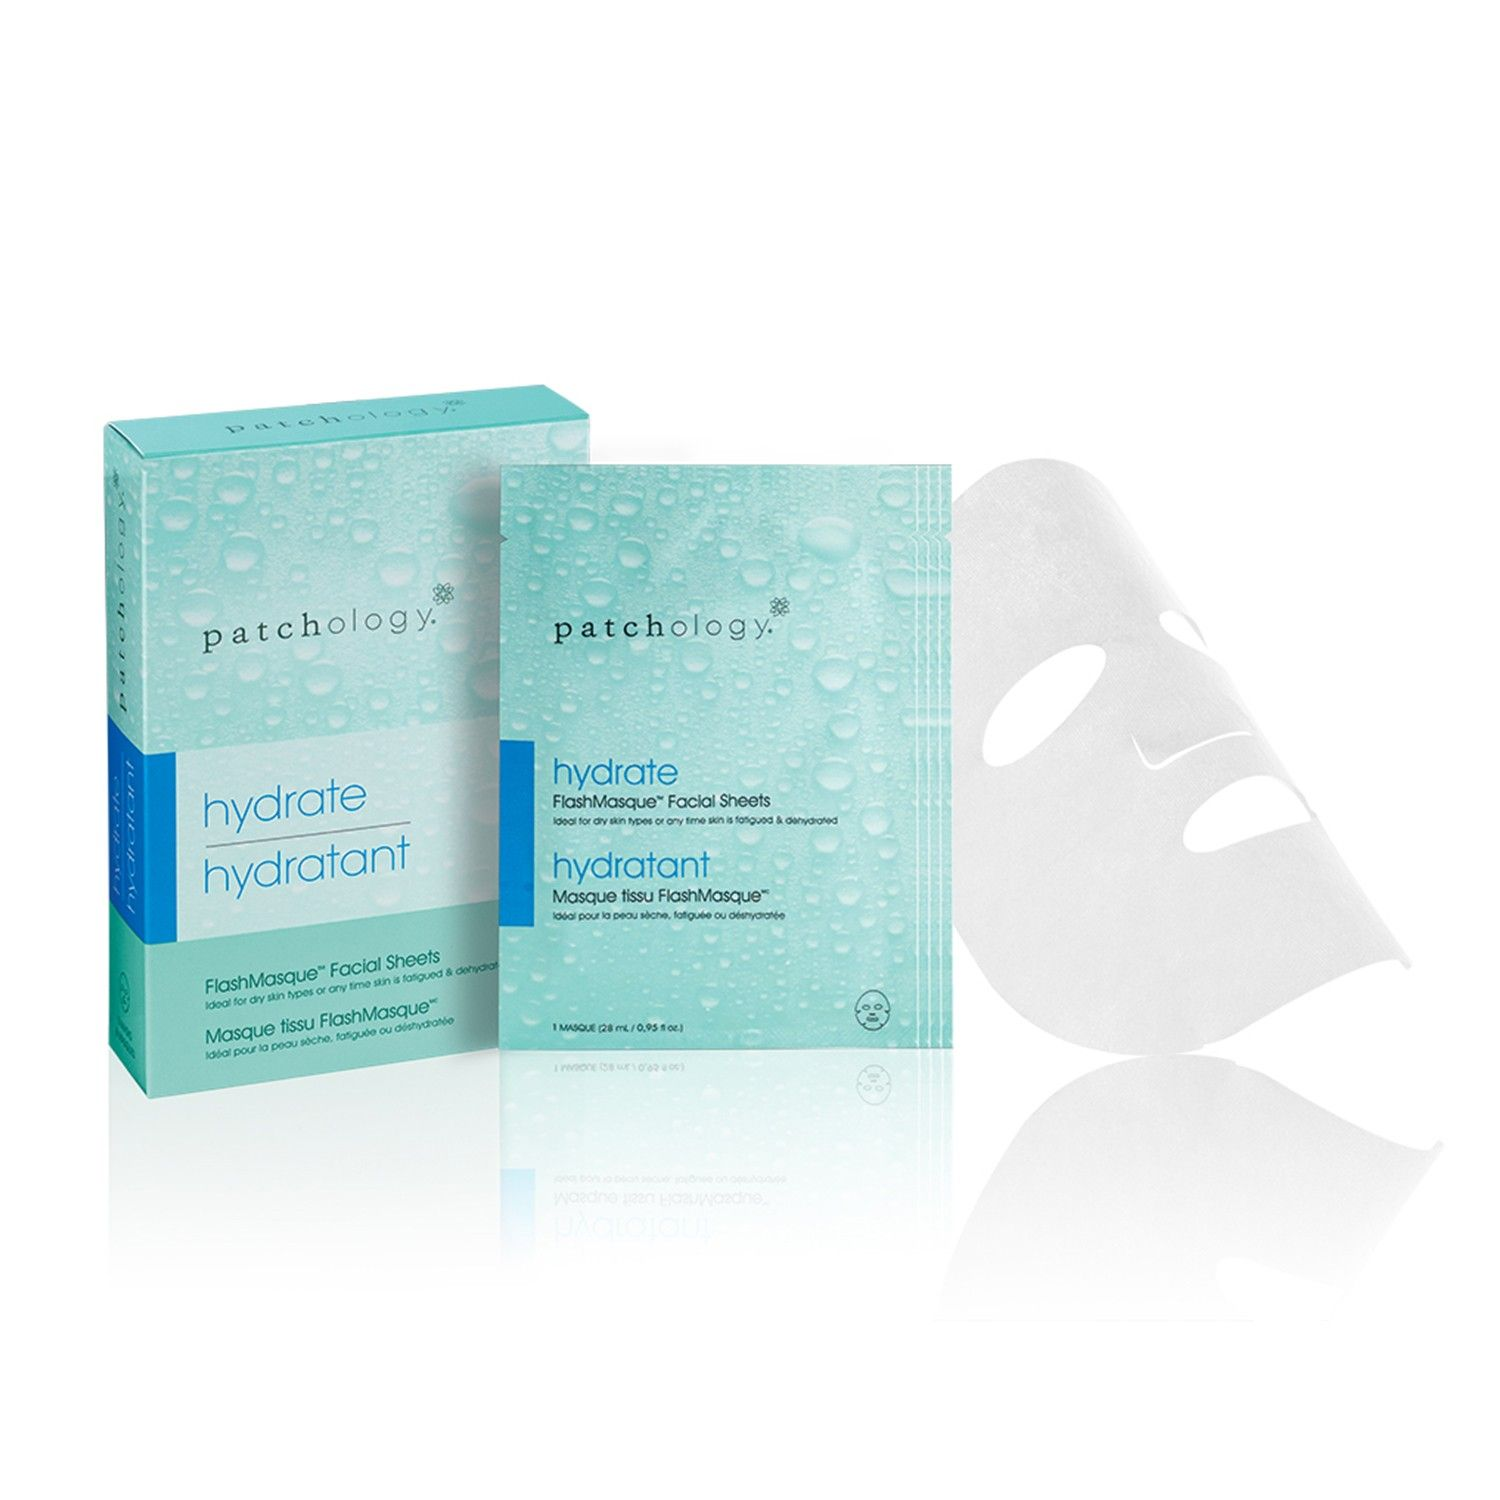 Patchology hydrate - FlashMasque Facial Sheets (28 ml / 0.95 fl oz)